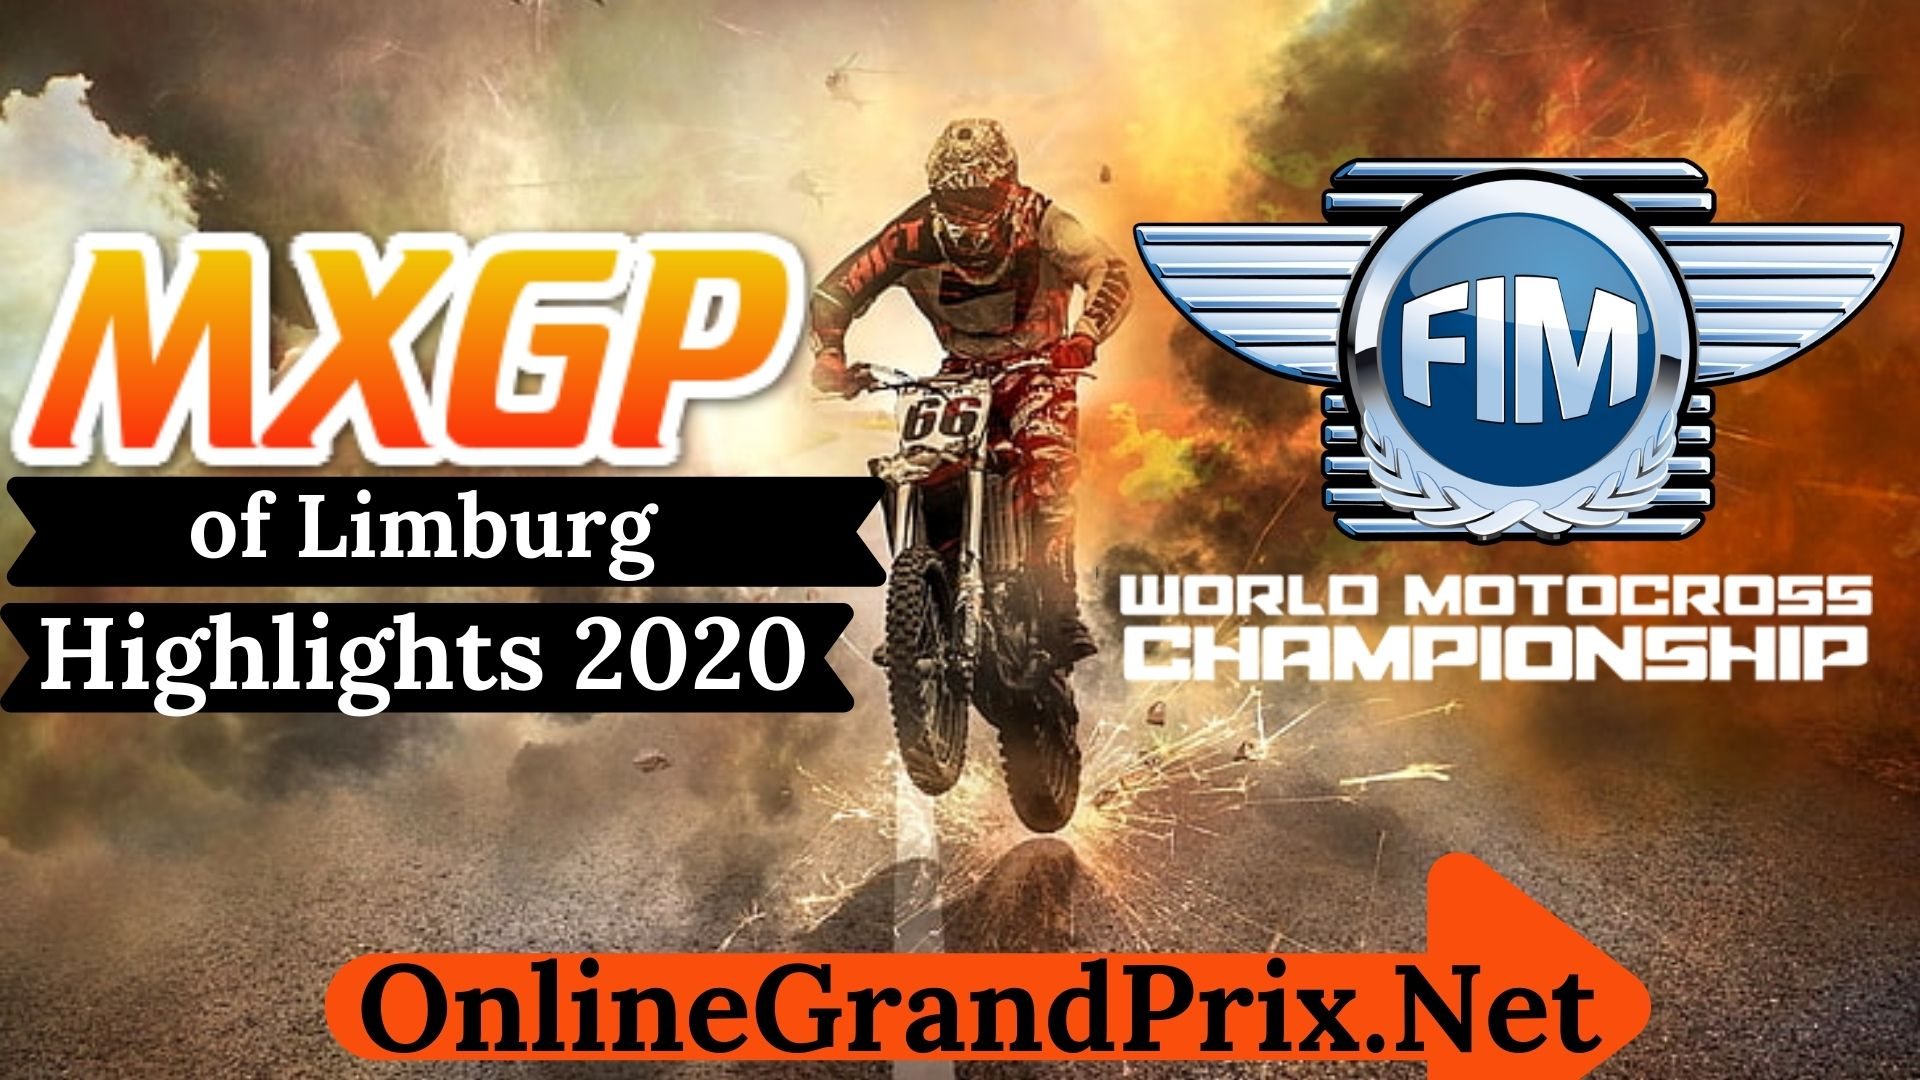 MXGP of Limburg Highlights 2020